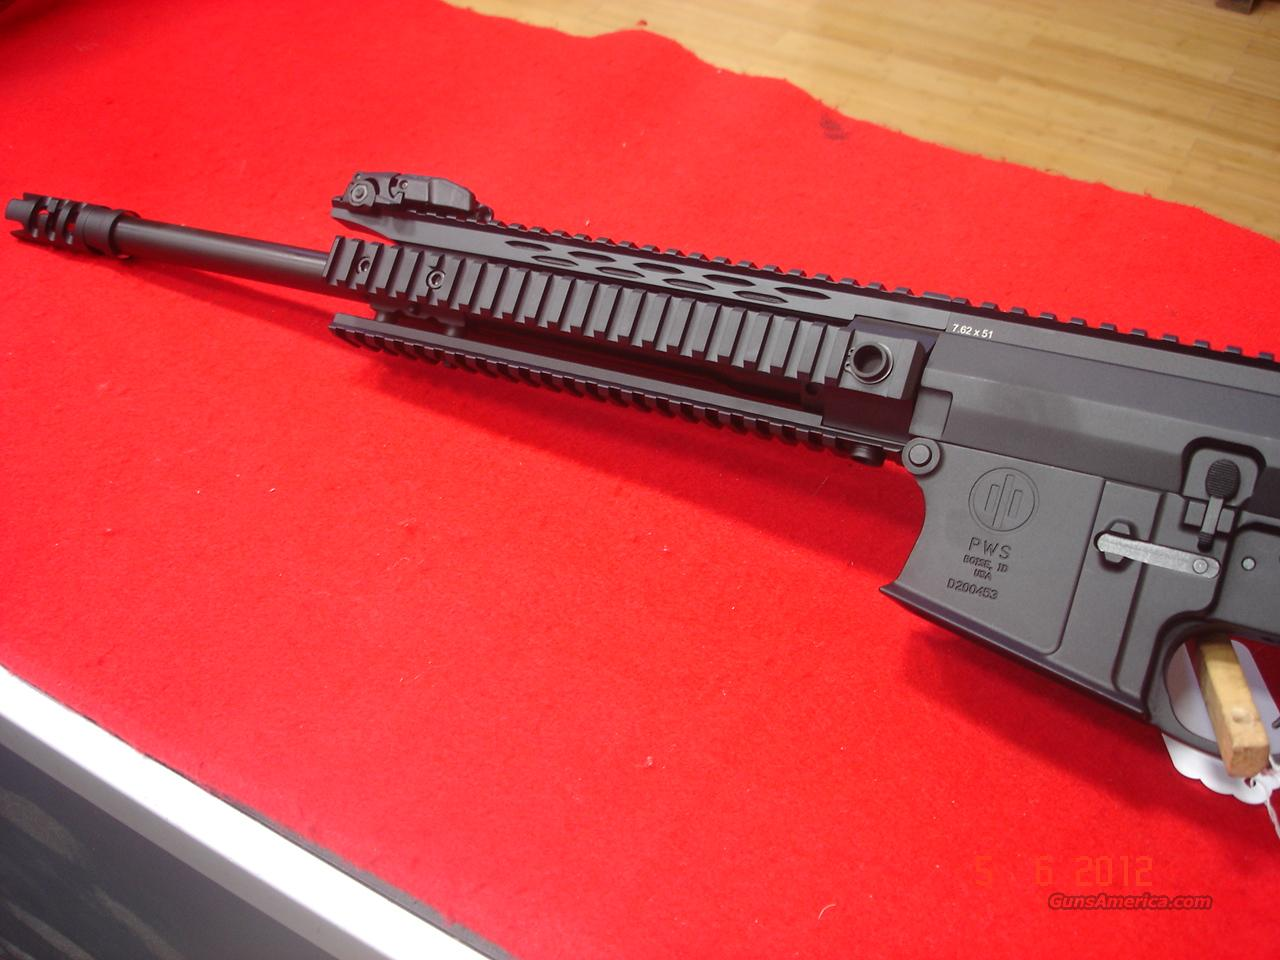 PWS MK216 .7.62 NATO  Guns > Rifles > AR-15 Rifles - Small Manufacturers > Complete Rifle